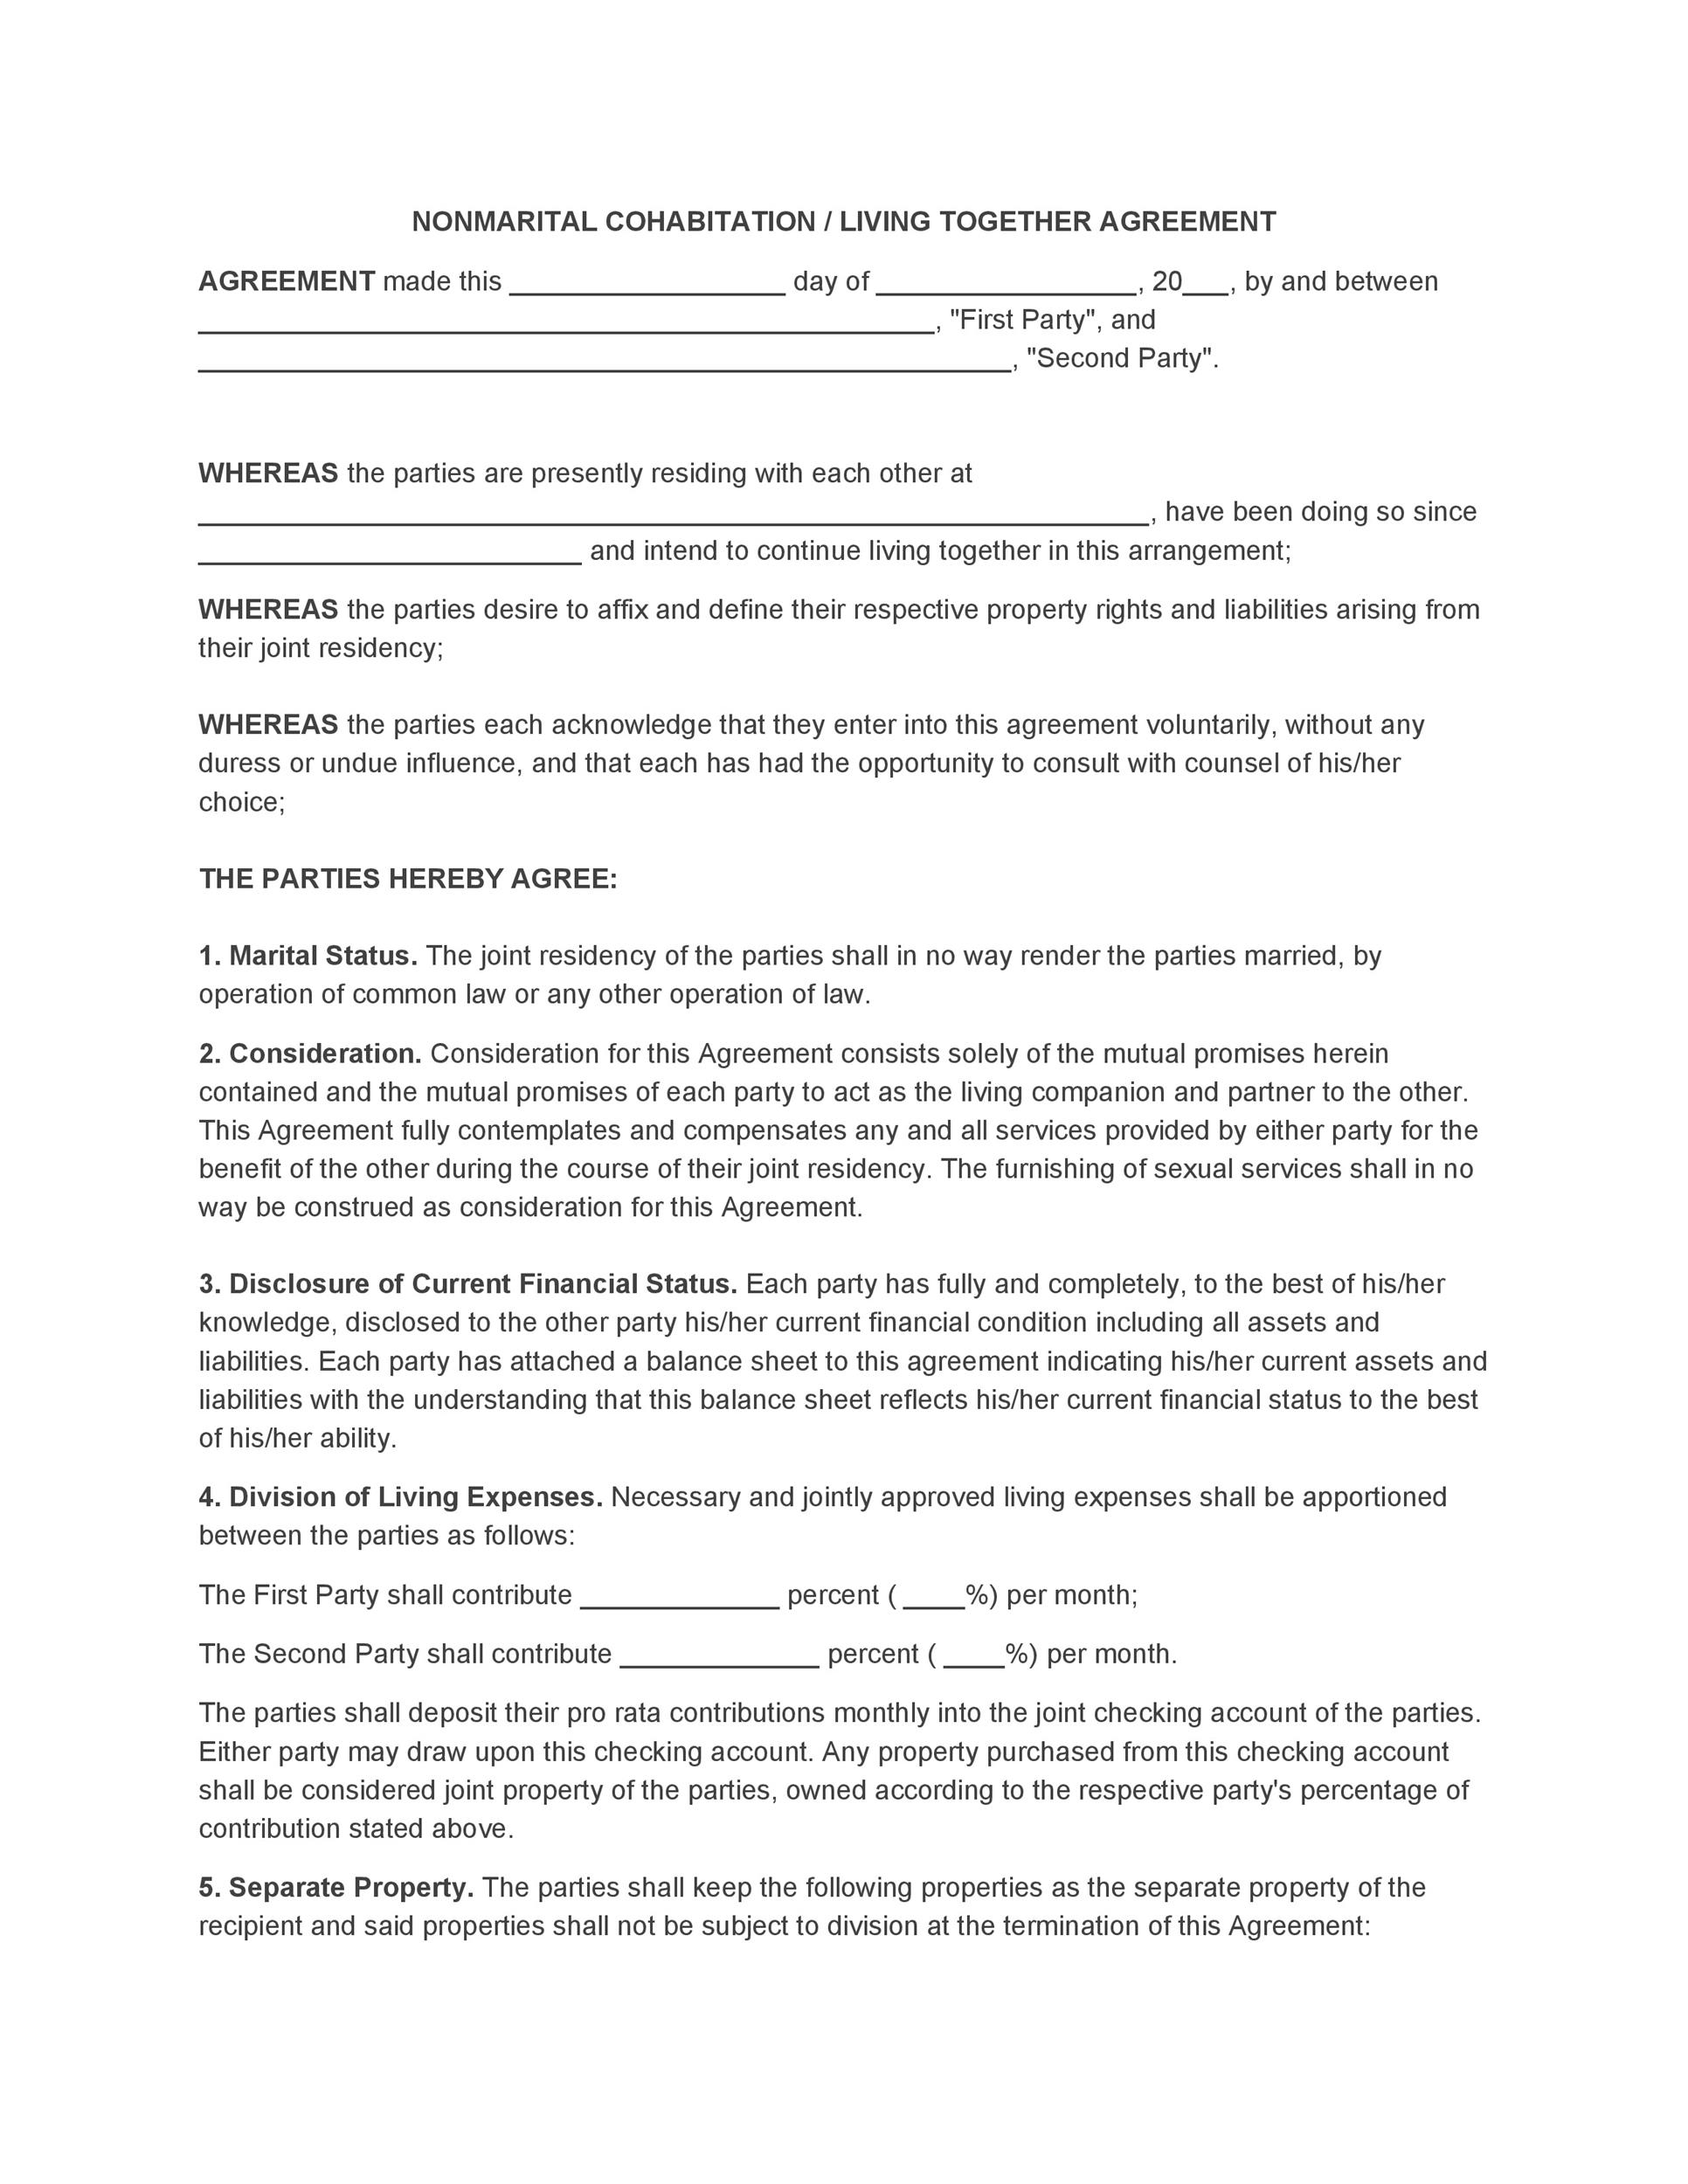 Free cohabitation agreement template 01